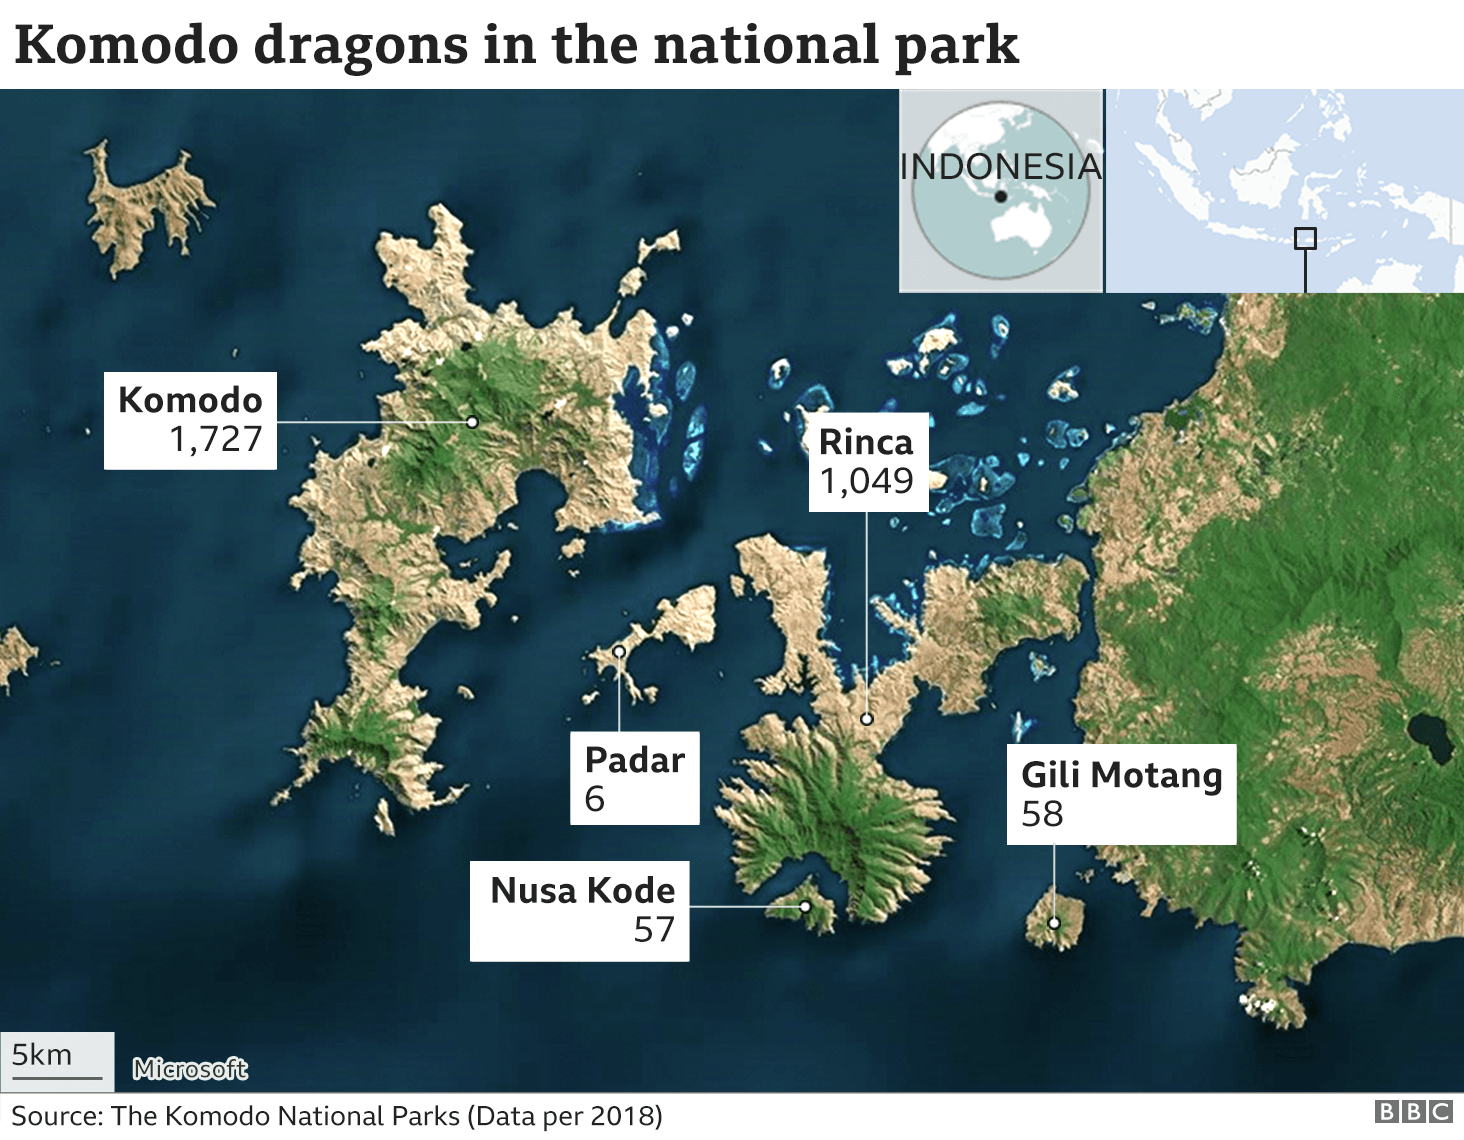 Map of Komodo dragons in national park